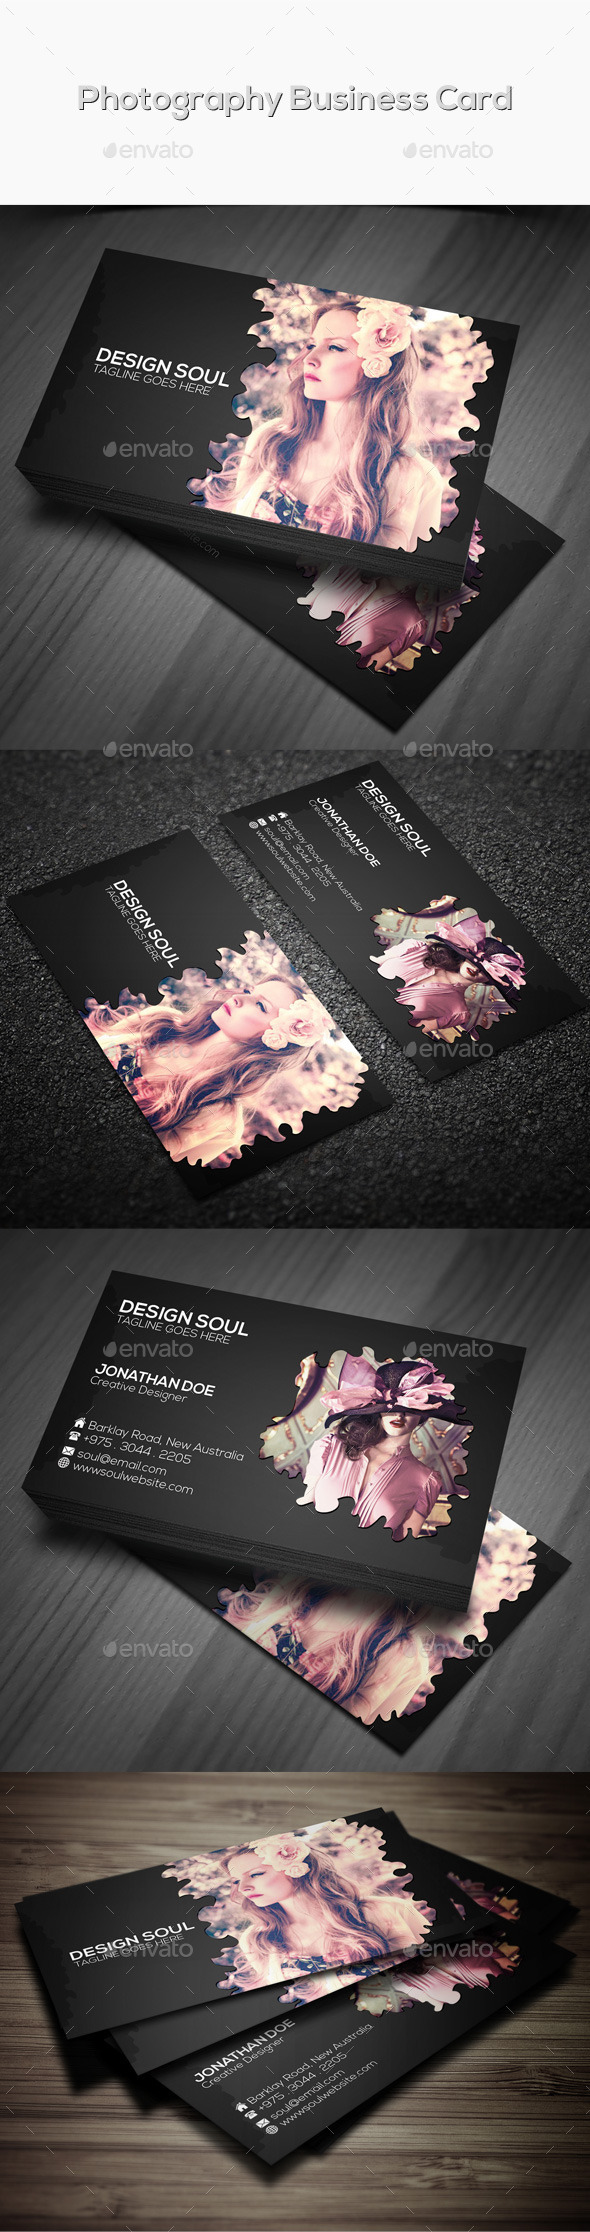 GraphicRiver Photography Business Card 9599238